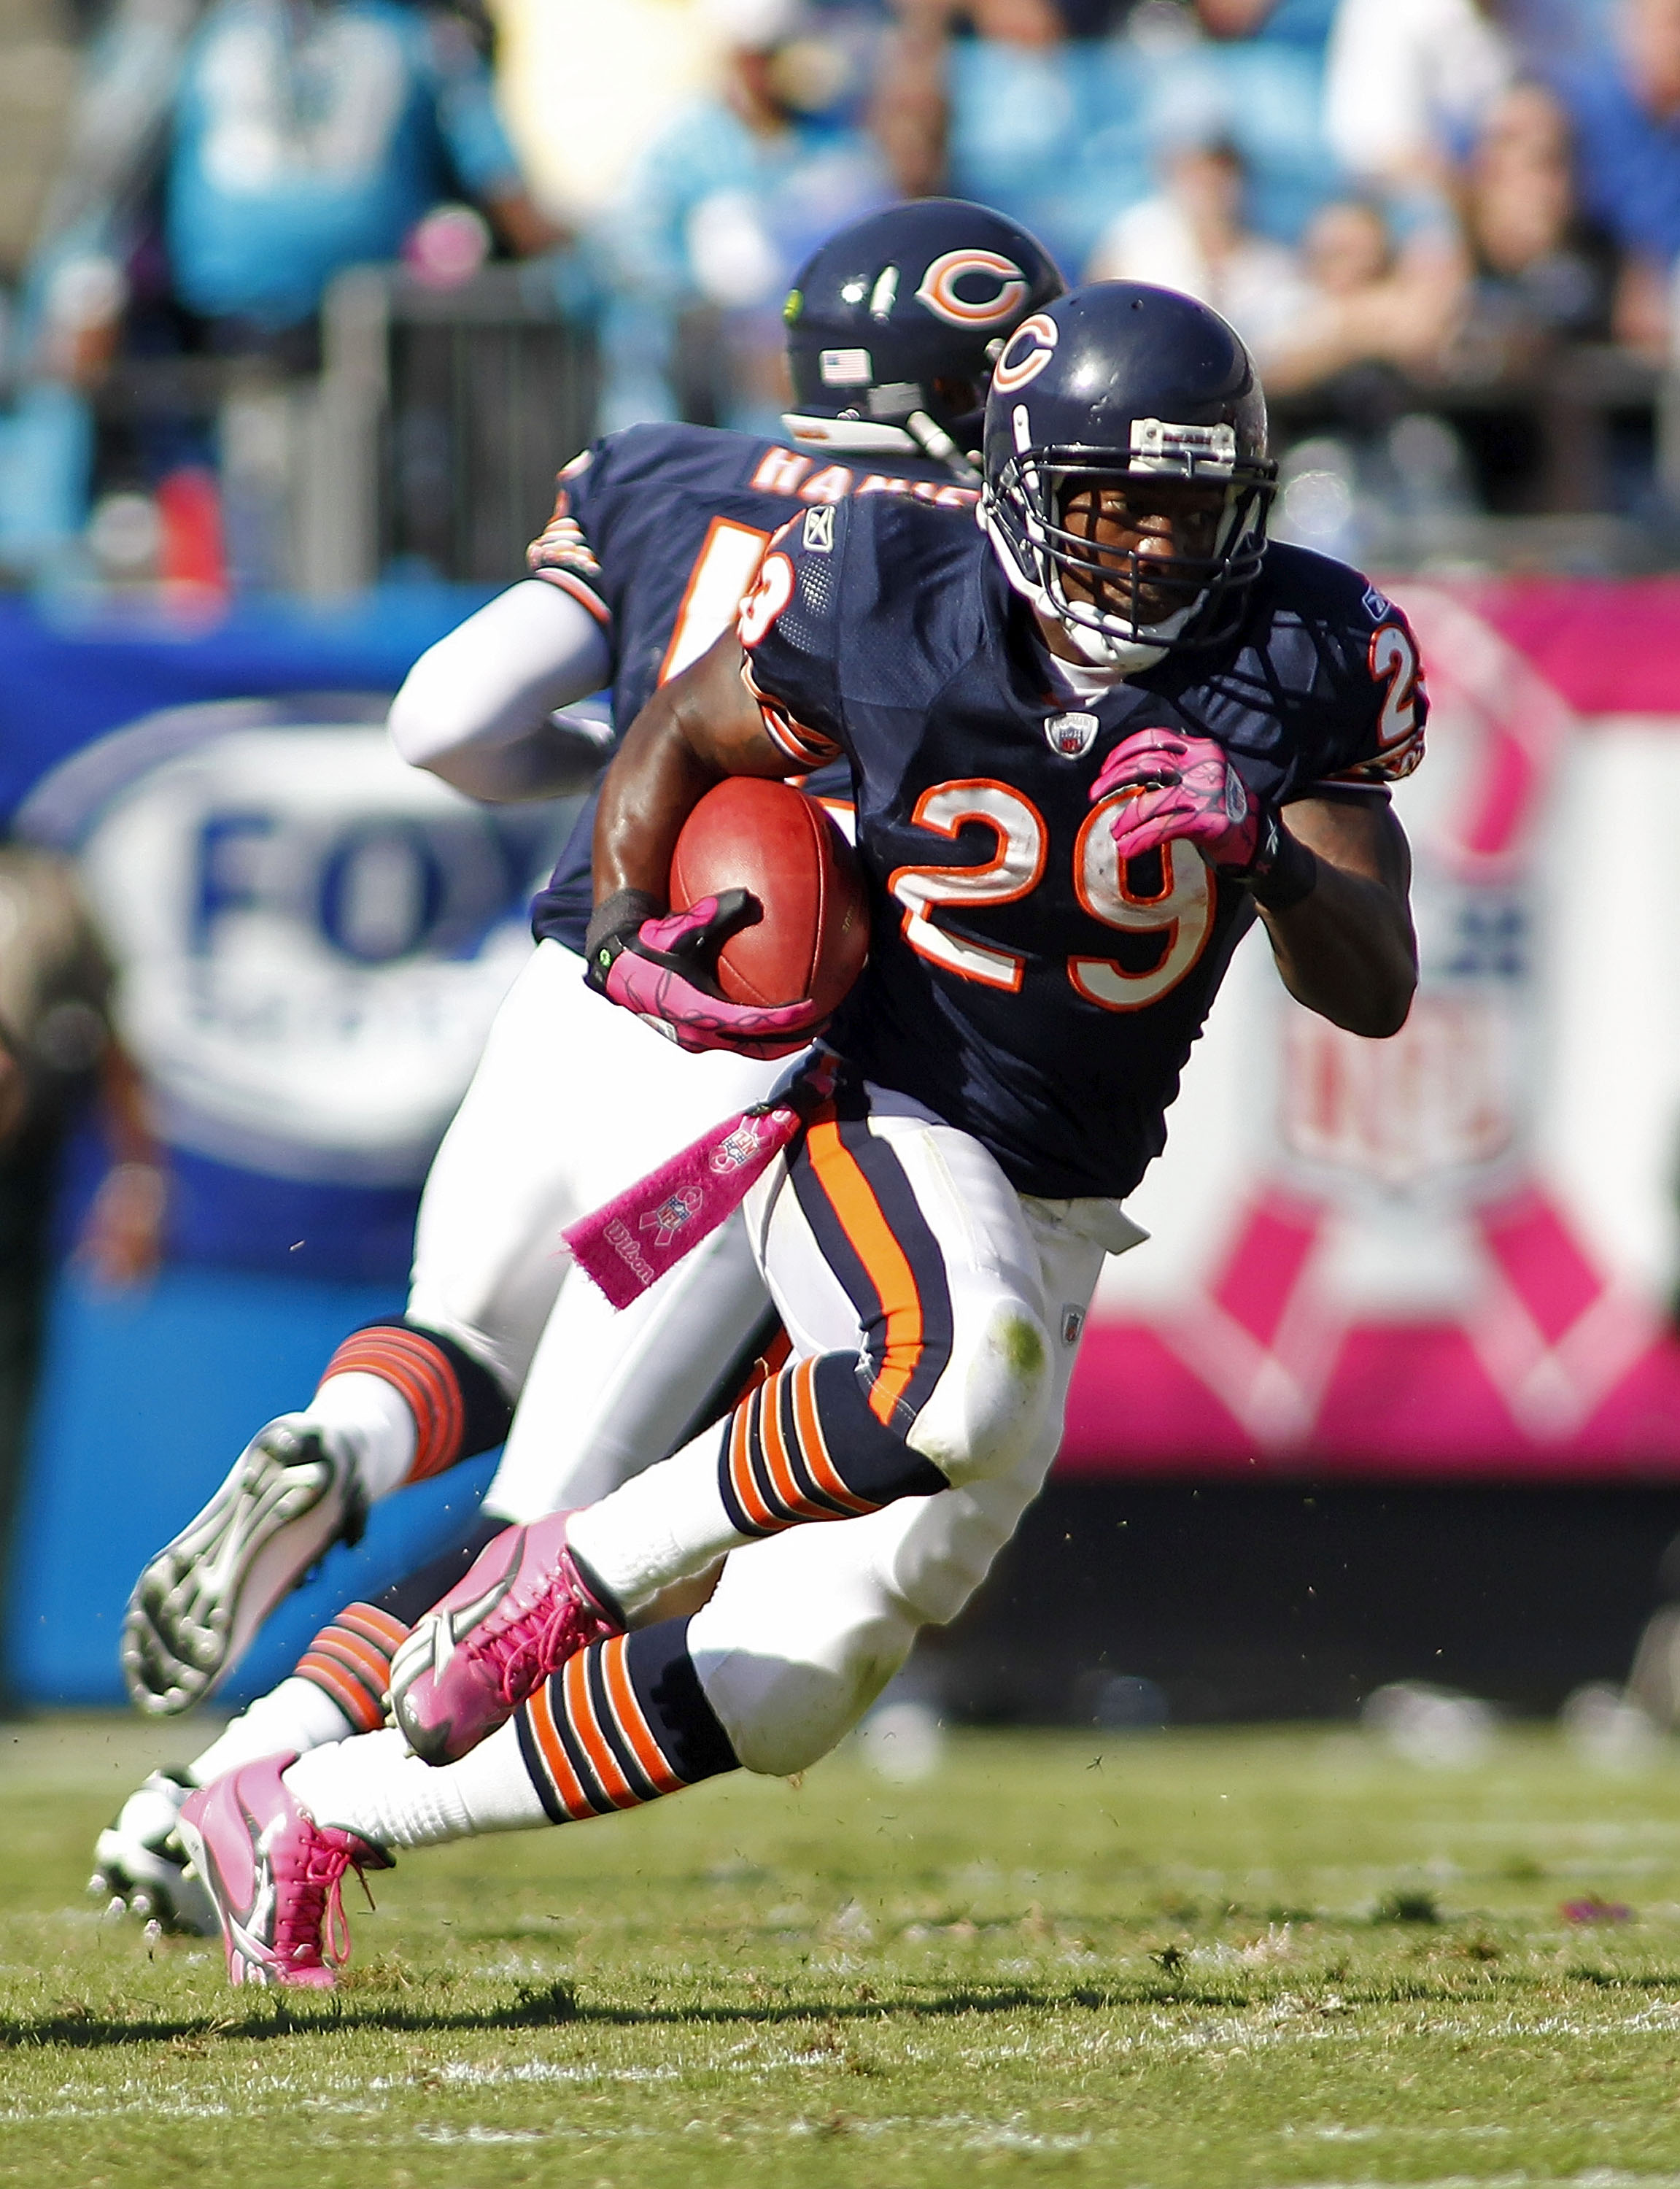 CHARLOTTE, NC - OCTOBER 10: Running back Chester Taylor #29 of the Chicago Bears runs with the ball against the Carolina Panthers at Bank of America Stadium on October 10, 2010 in Charlotte, North Carolina. (Photo by Geoff Burke/Getty Images)